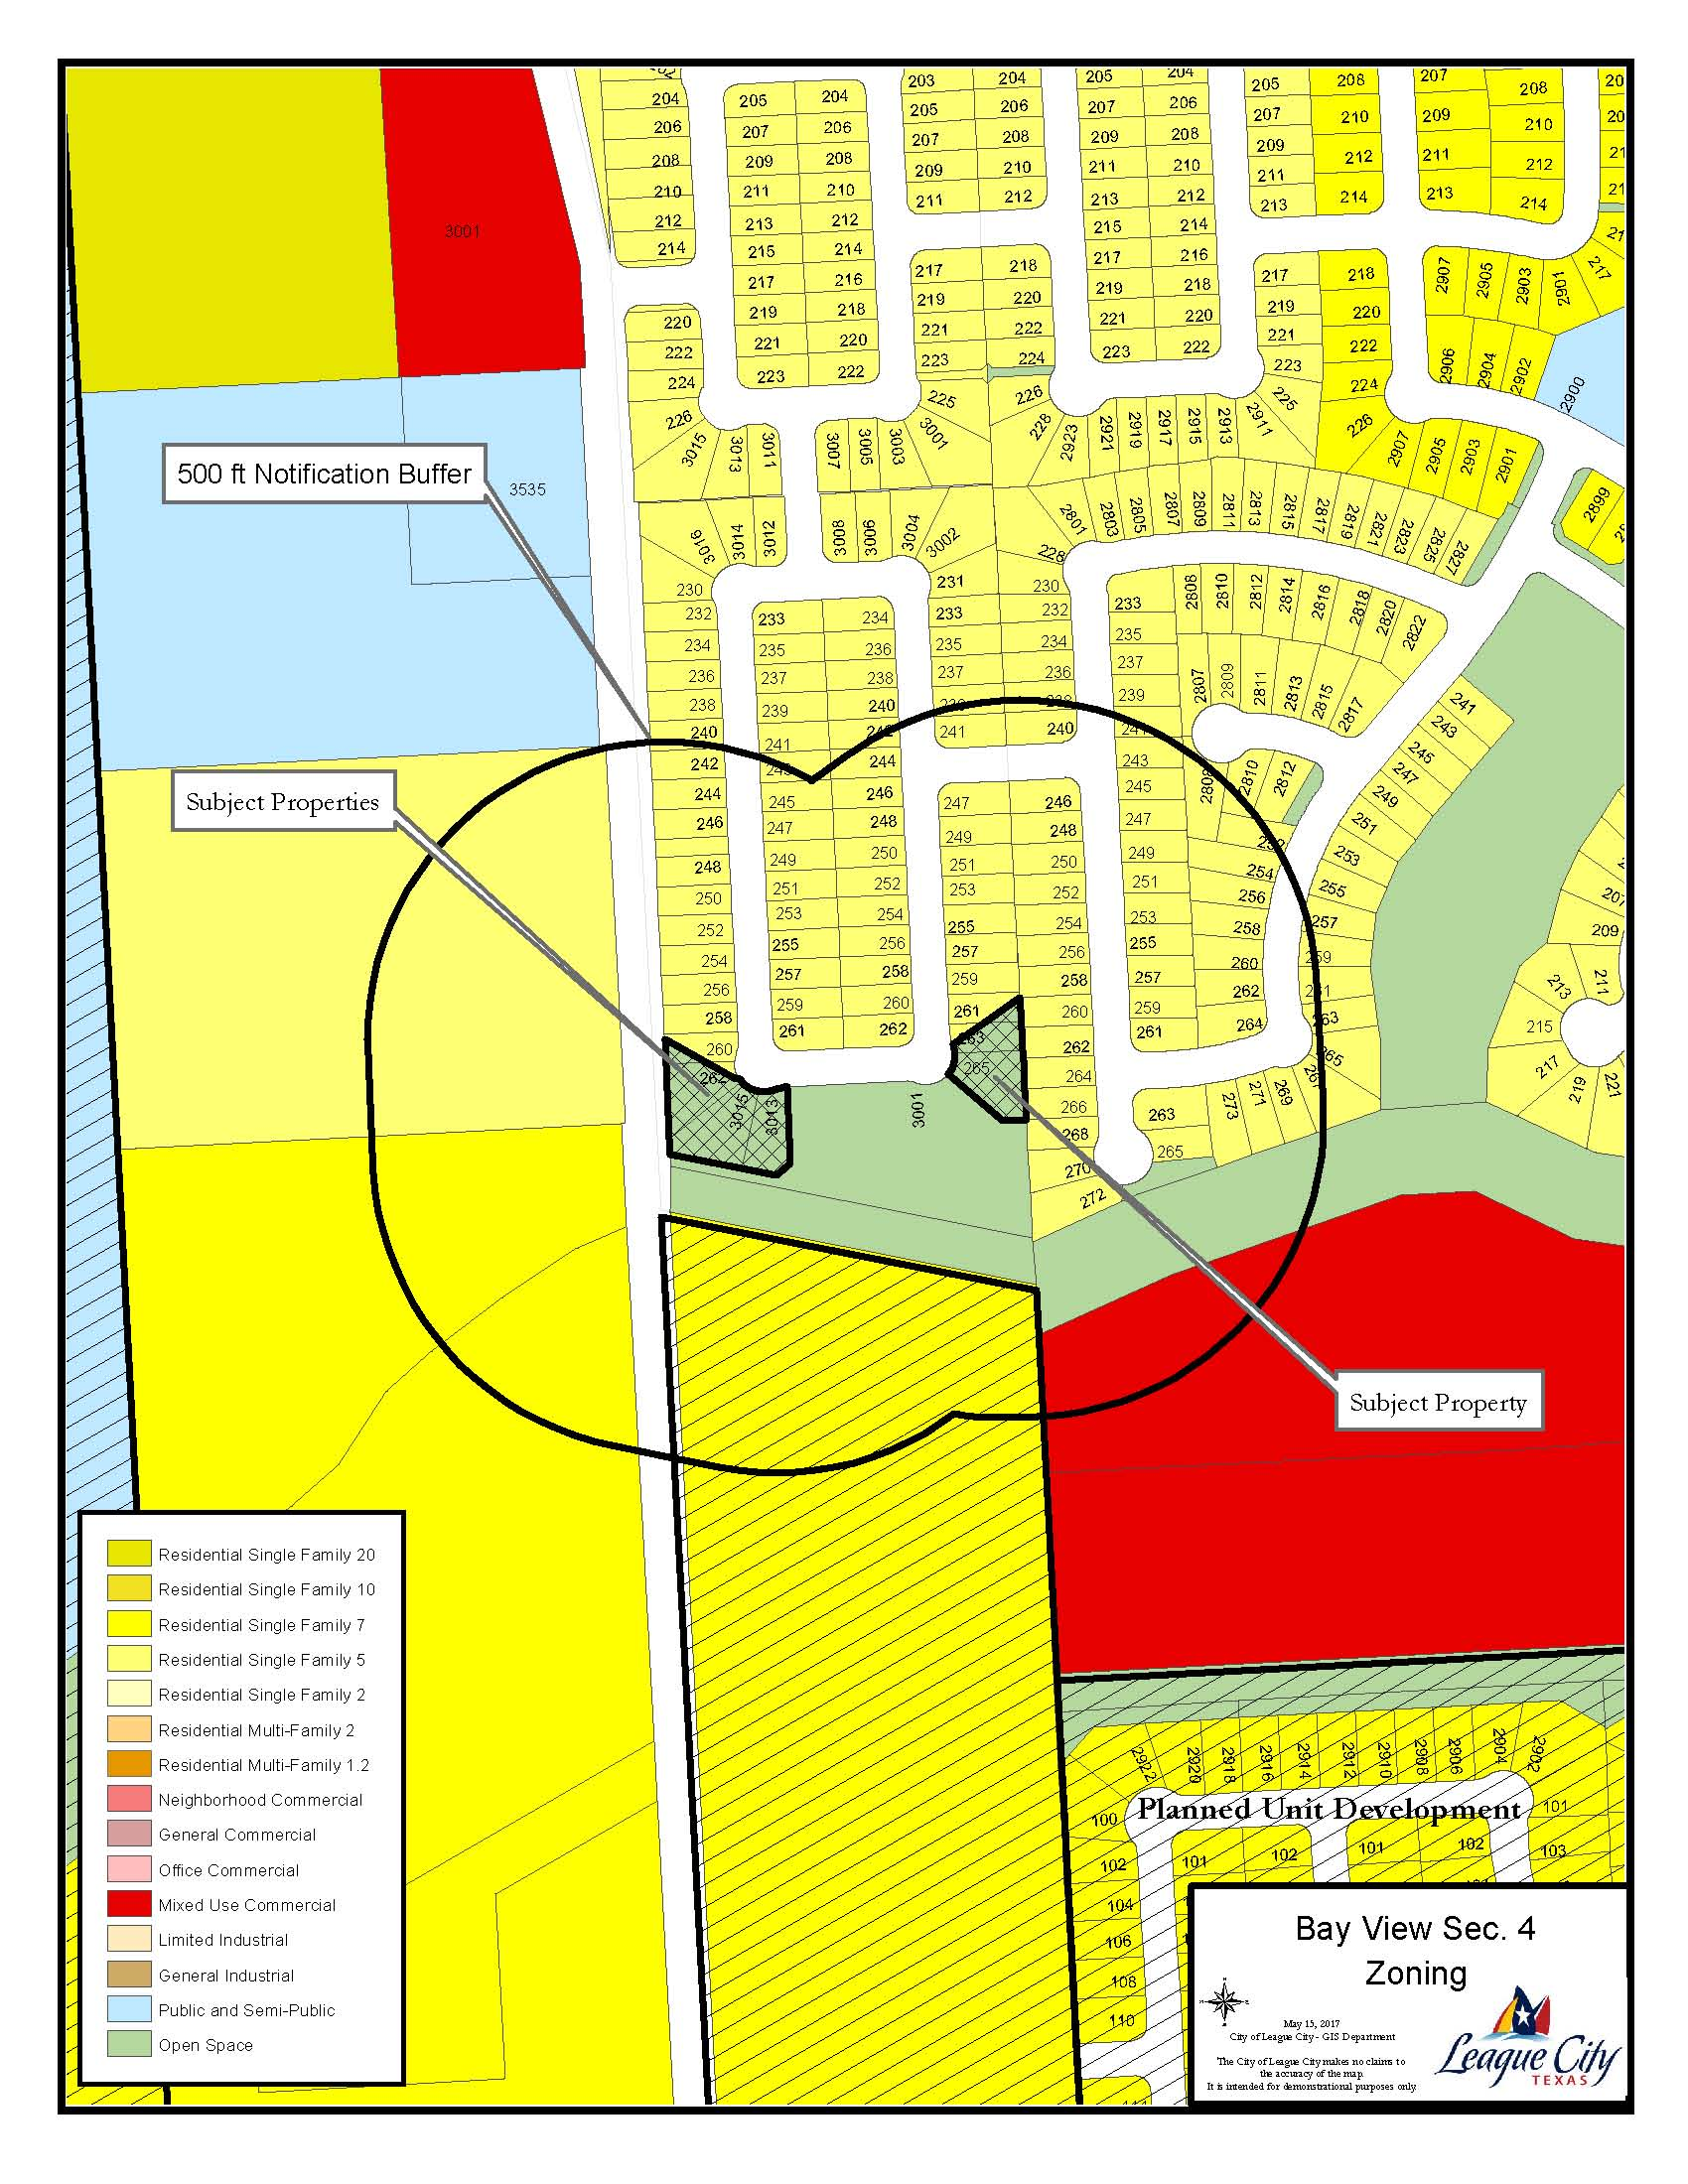 Zoning map of Bay View, Section 4